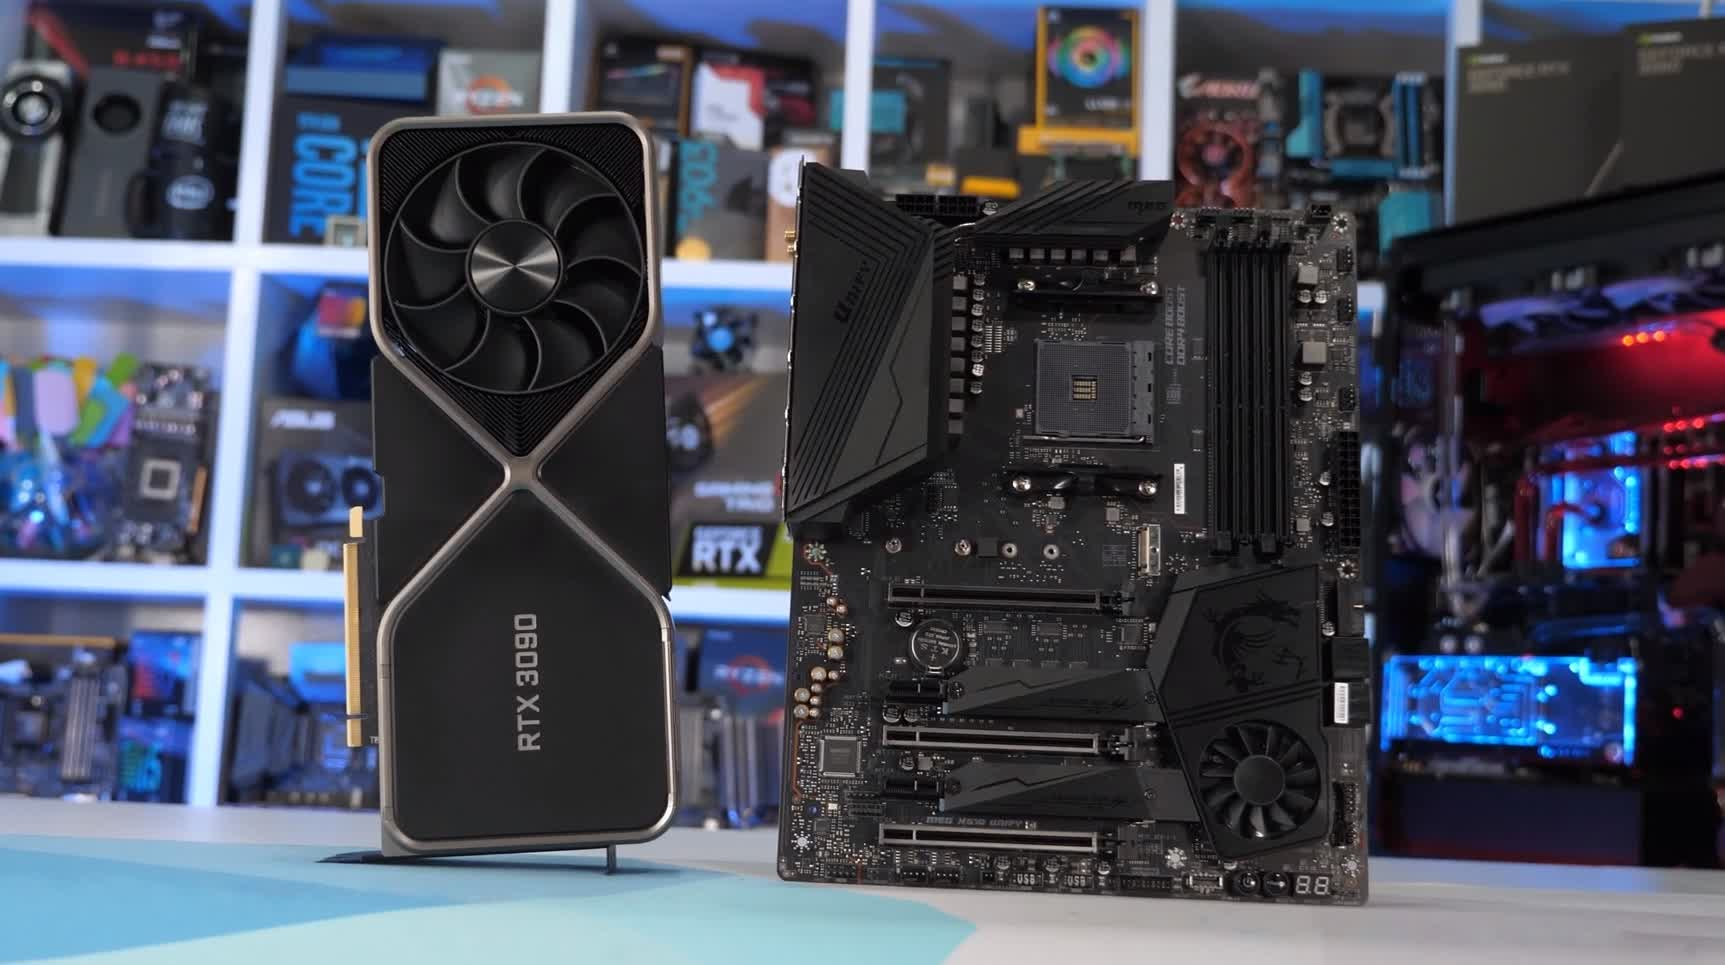 Rumors pick up about a monstrous GeForce RTX 3090 Super on the way